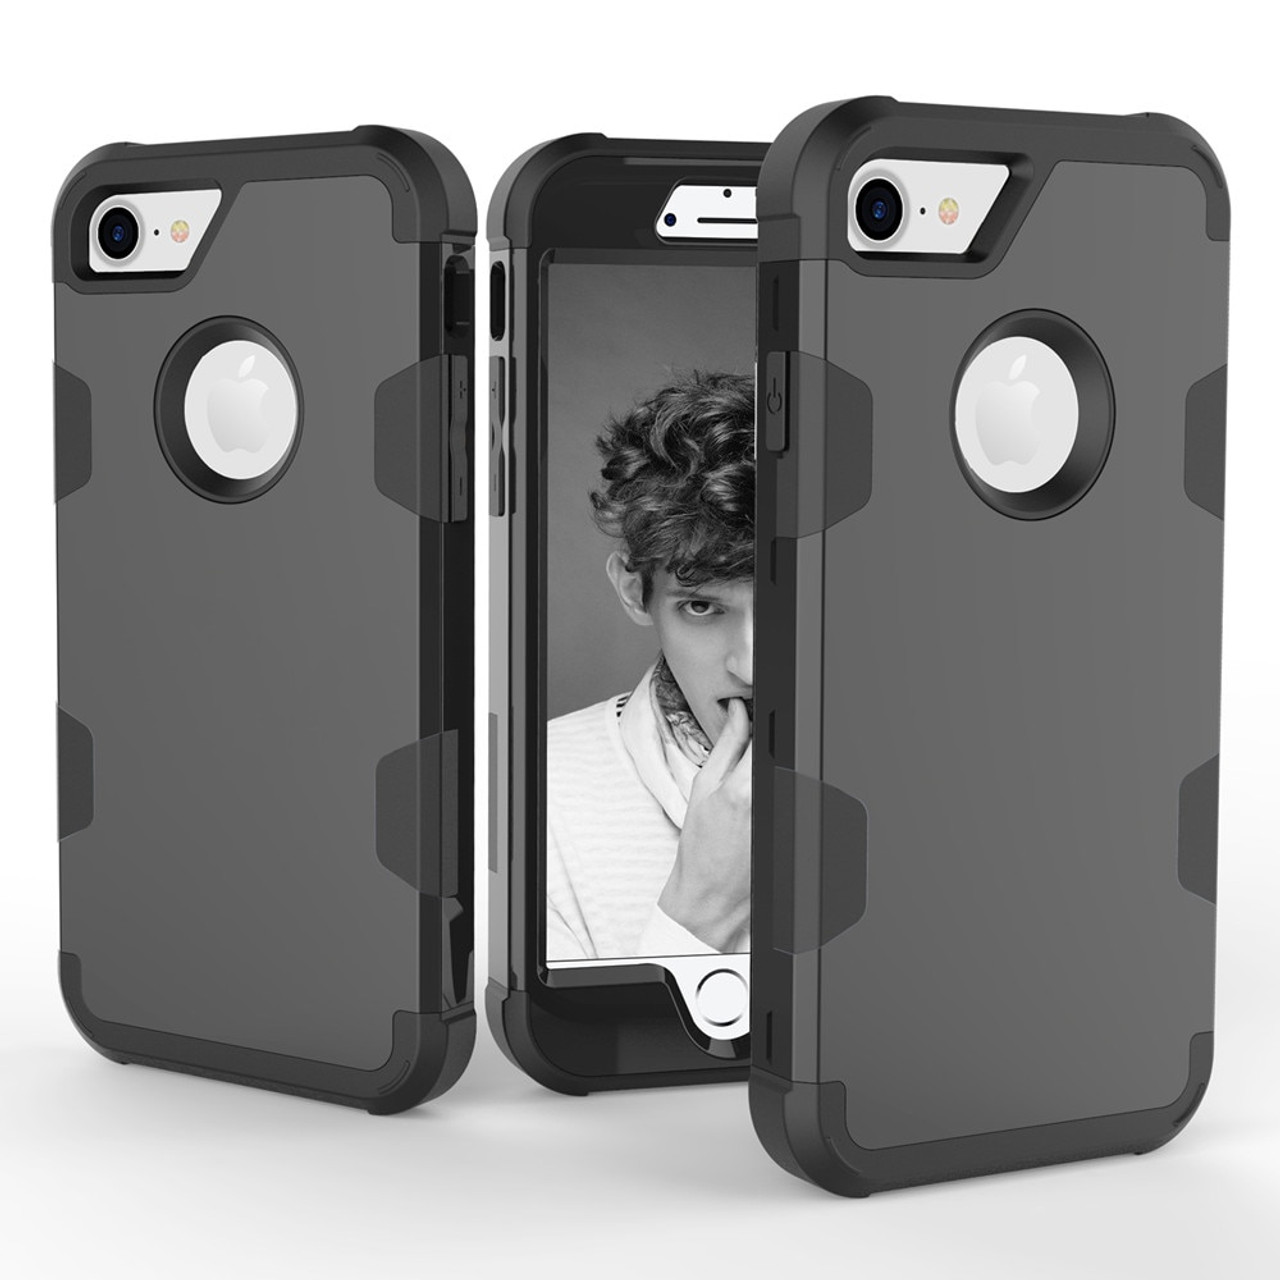 online store 9bd60 4570d For Apple iPhone 7 8 Case Robot Shockproof Protect Cover Hybrid Hard Rubber  Impact Armor Phone Case For iPhone7 6 6S Plus Coque